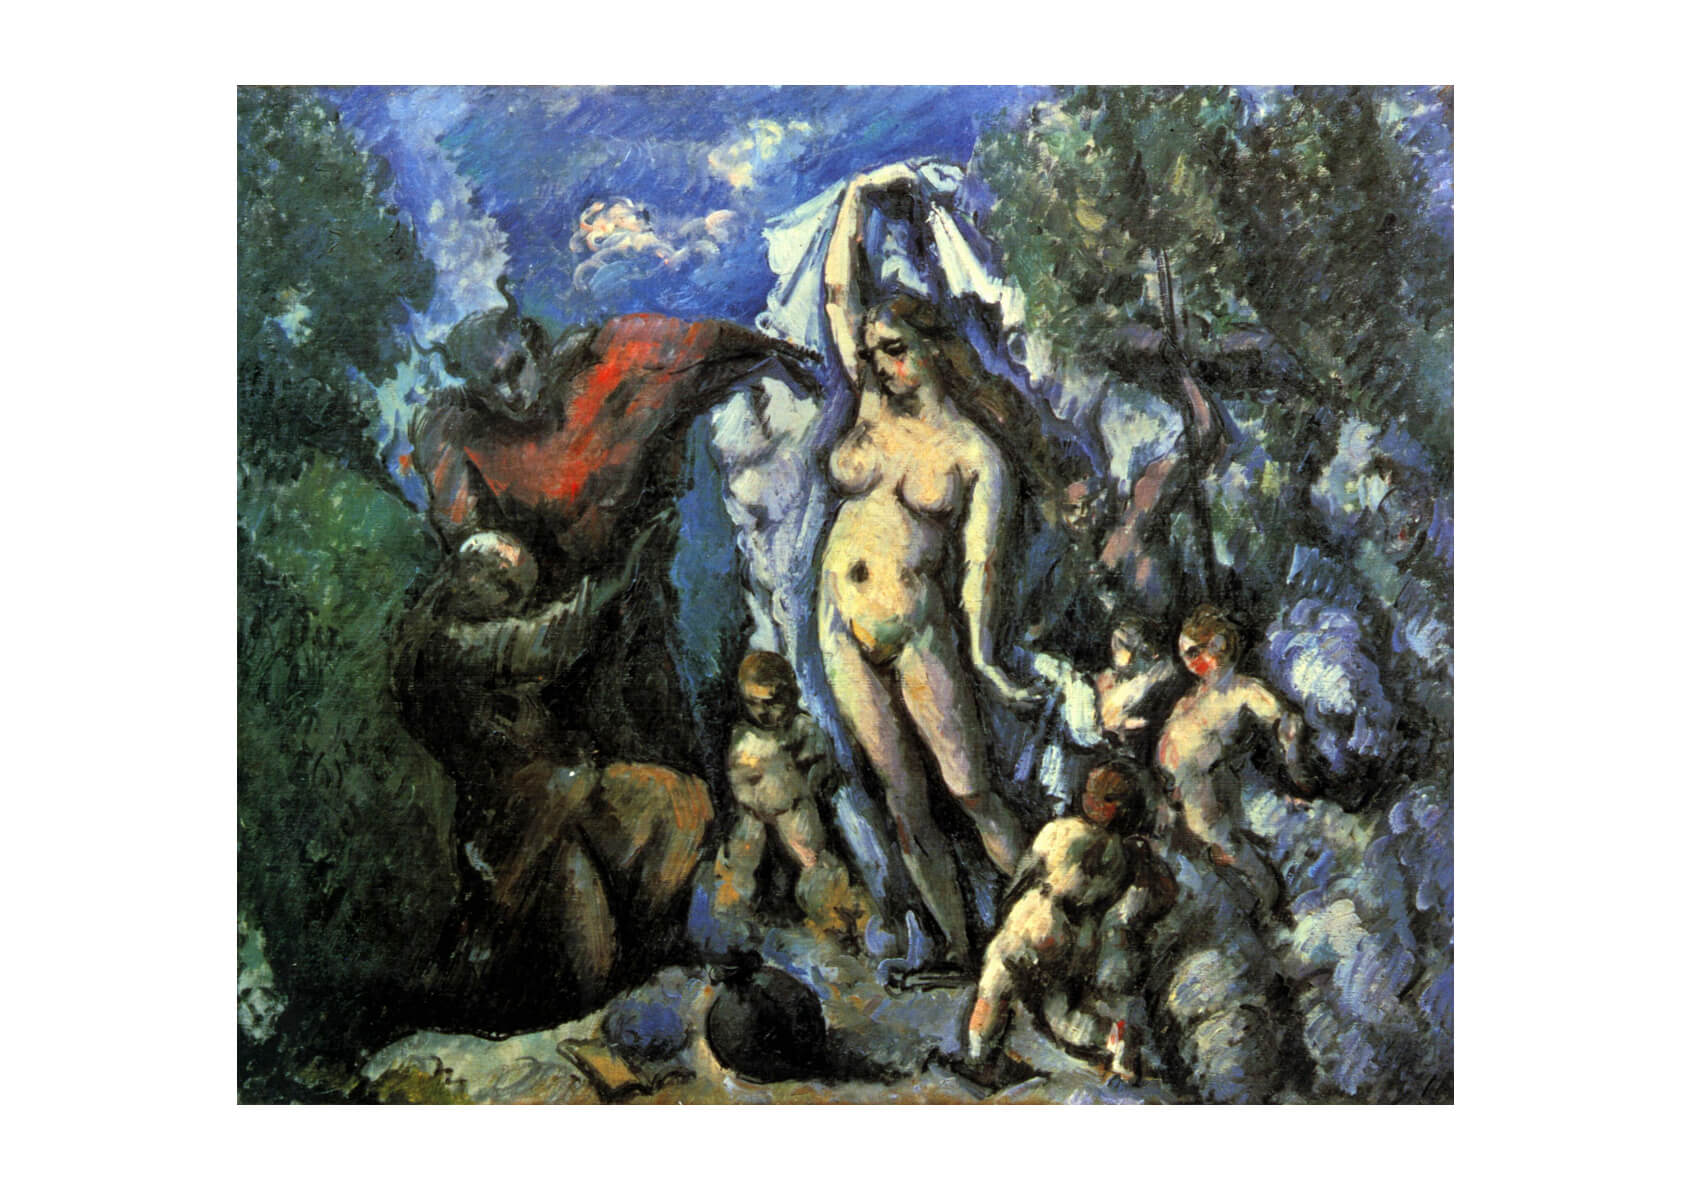 Paul Cezanne - Nymphs and Devils